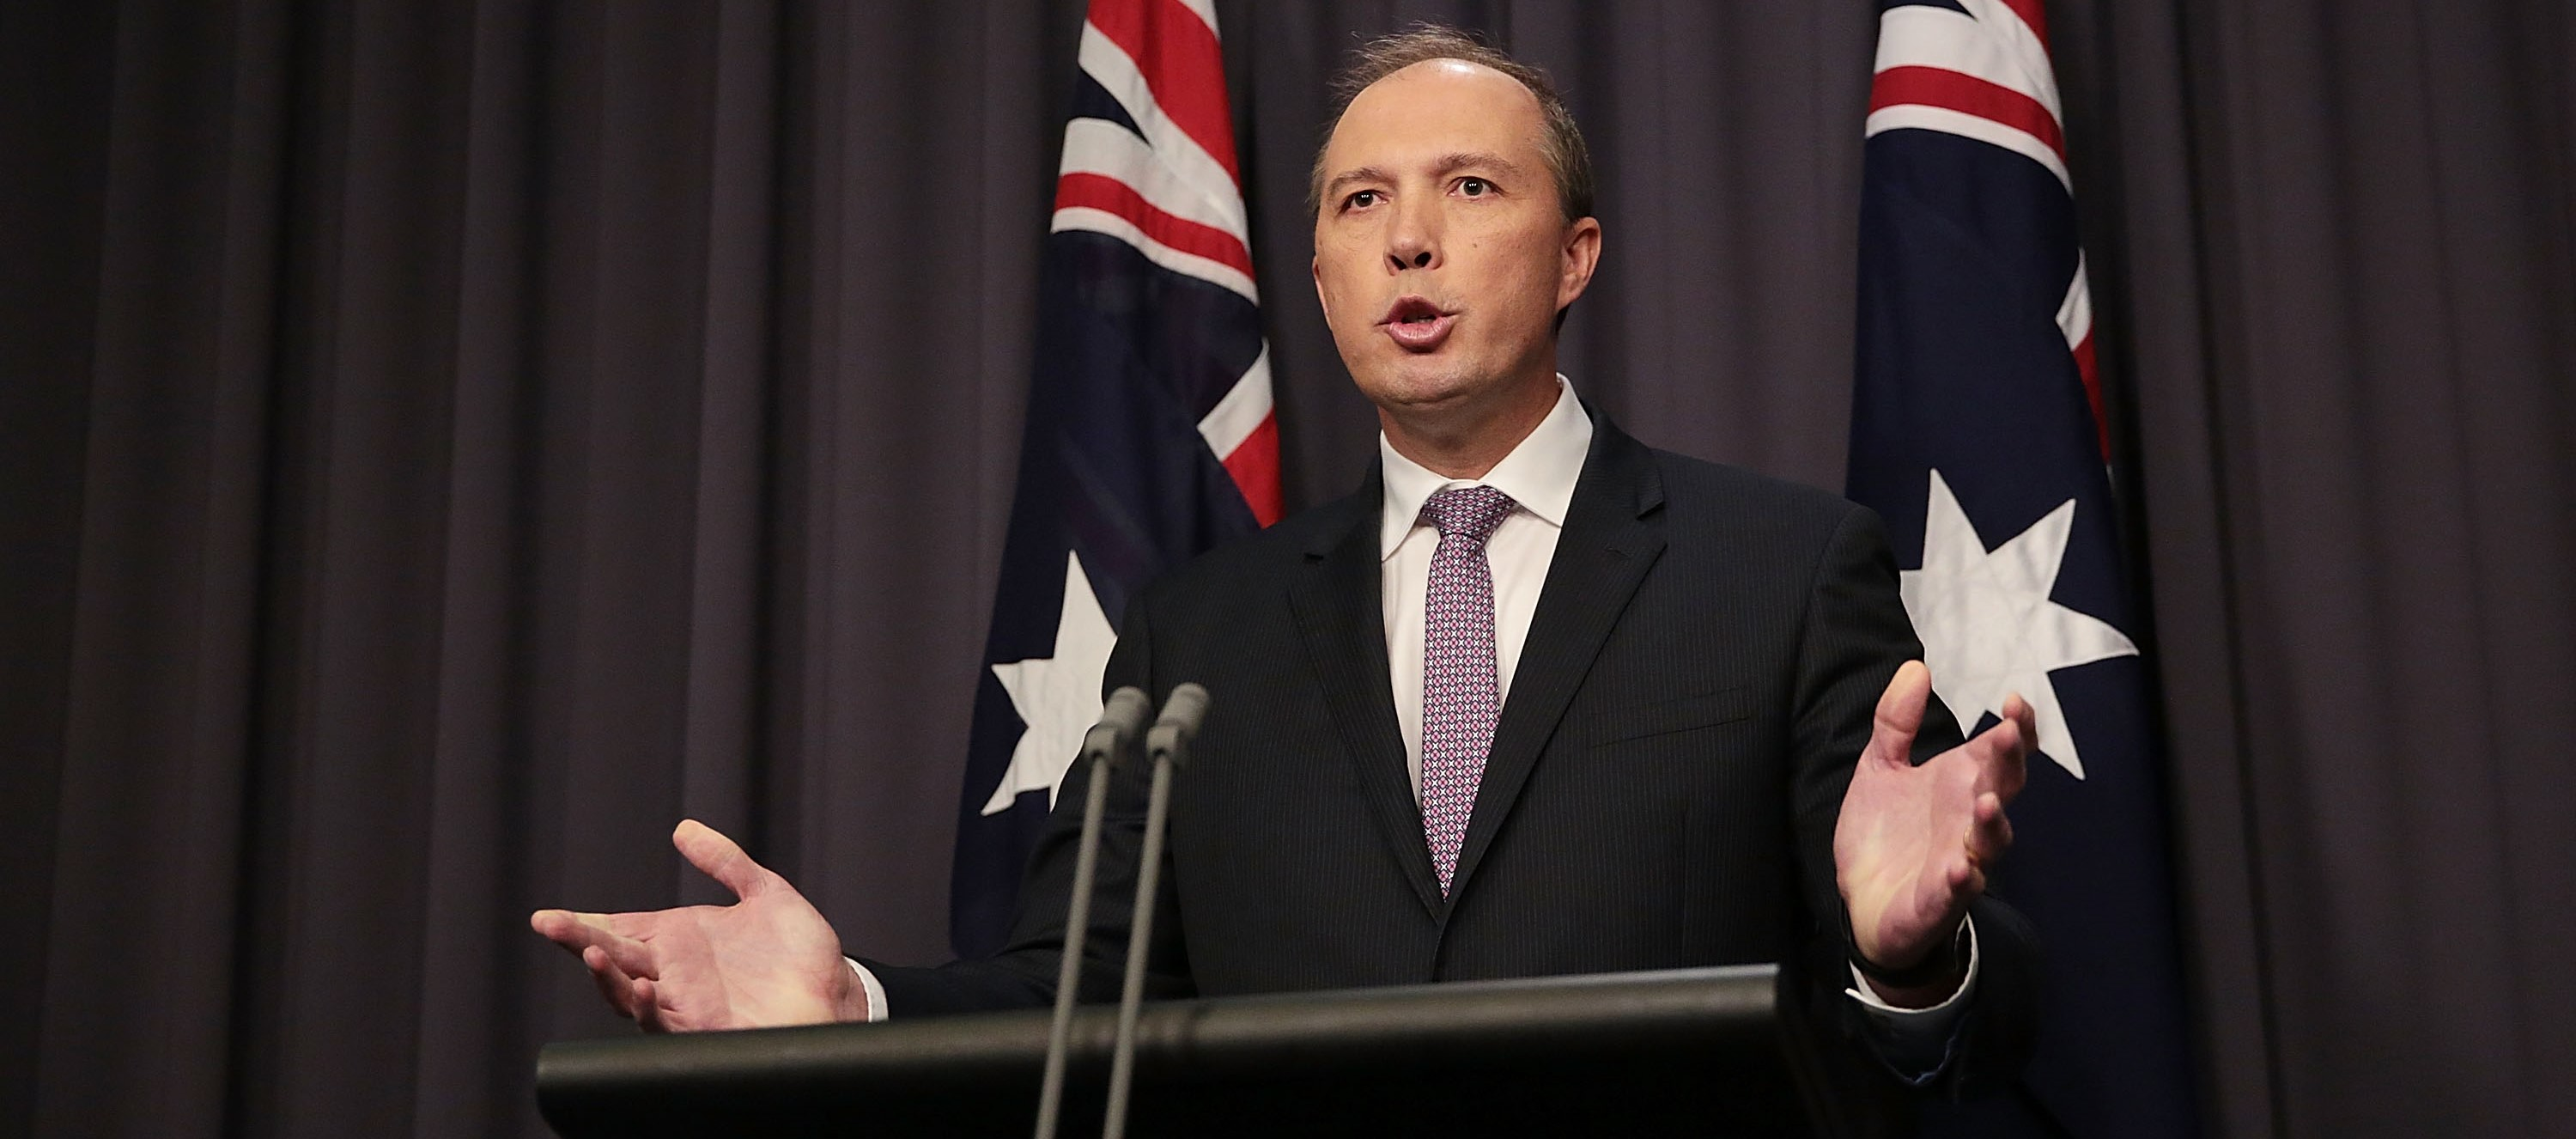 Immigration Minister Petter Dutton, May 2016 (Photo: Getty Images/Stefan Postles)